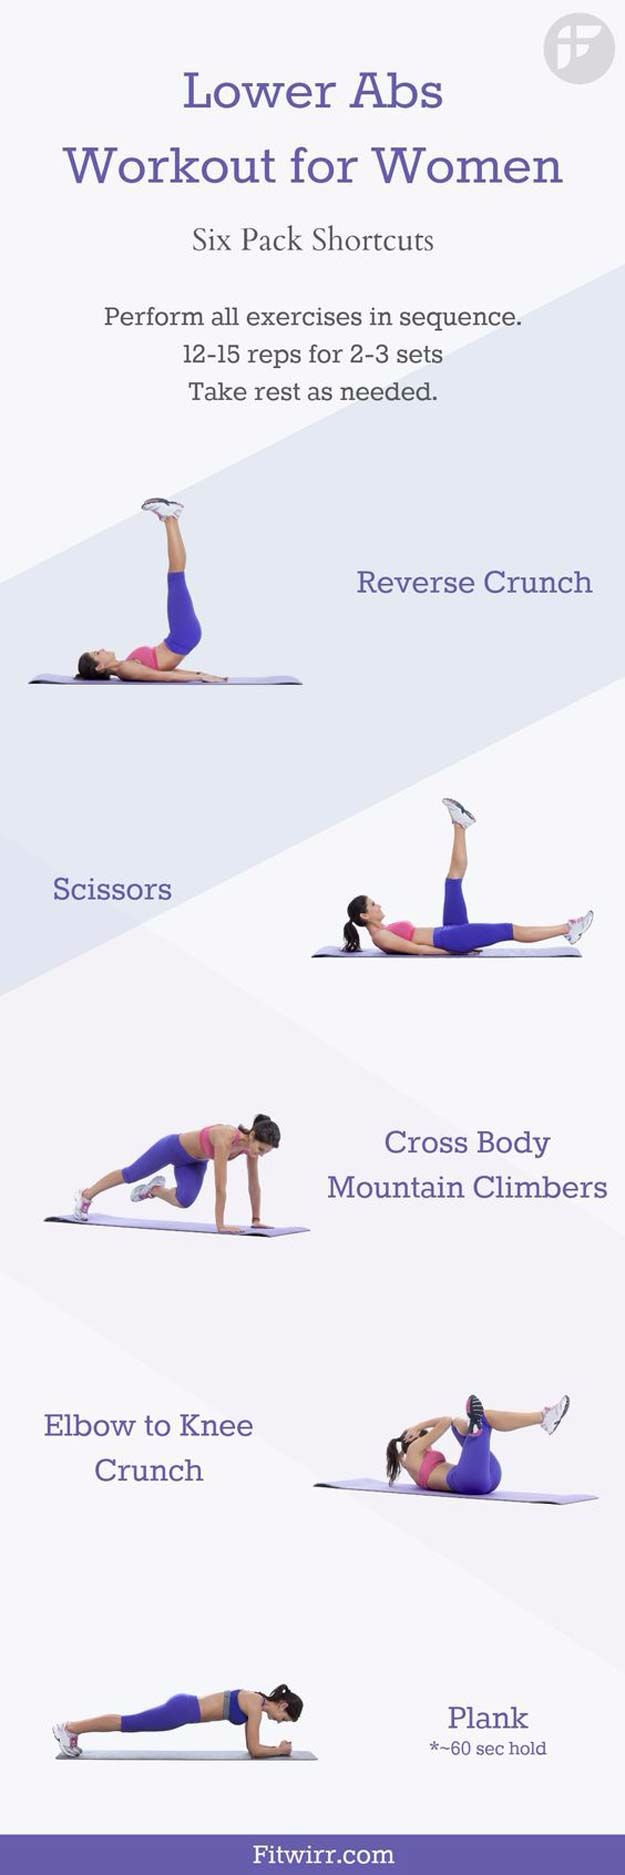 Best Exercises for 2018 - Best Lower Abs Workout for Women - Easy At Home Exercises - Quick Exercise Tutorials to Try at Lunch Break - Ways To Get In Shape - Butt, Abs, Arms, Legs, Thighs, Tummy